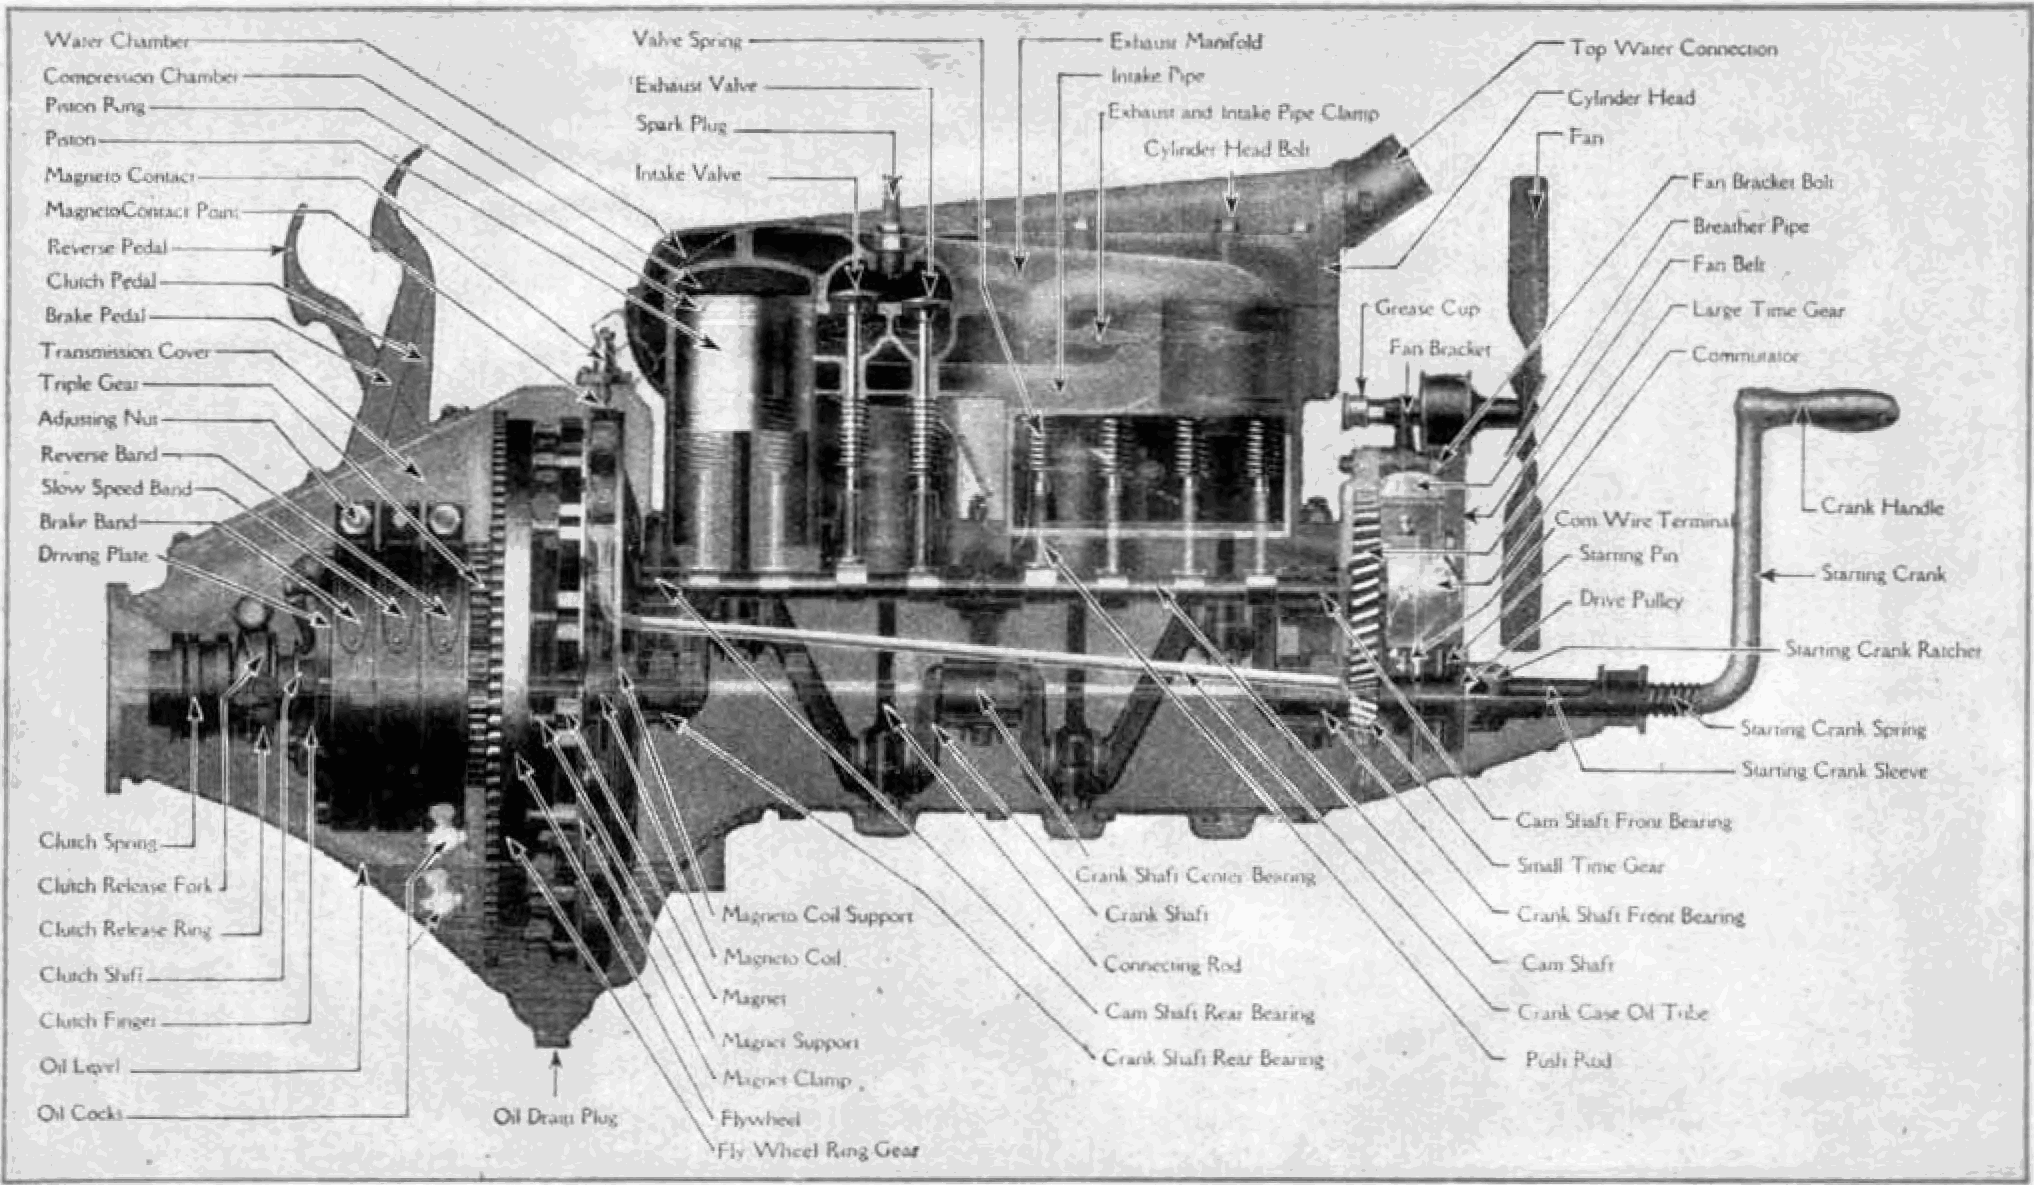 file ford model t 1919 d009 motor sectional view png wikimedia commons rh commons wikimedia org 1930 Ford Model a Light Switch Diagram 1931 Ford Model A Wiring Diagram